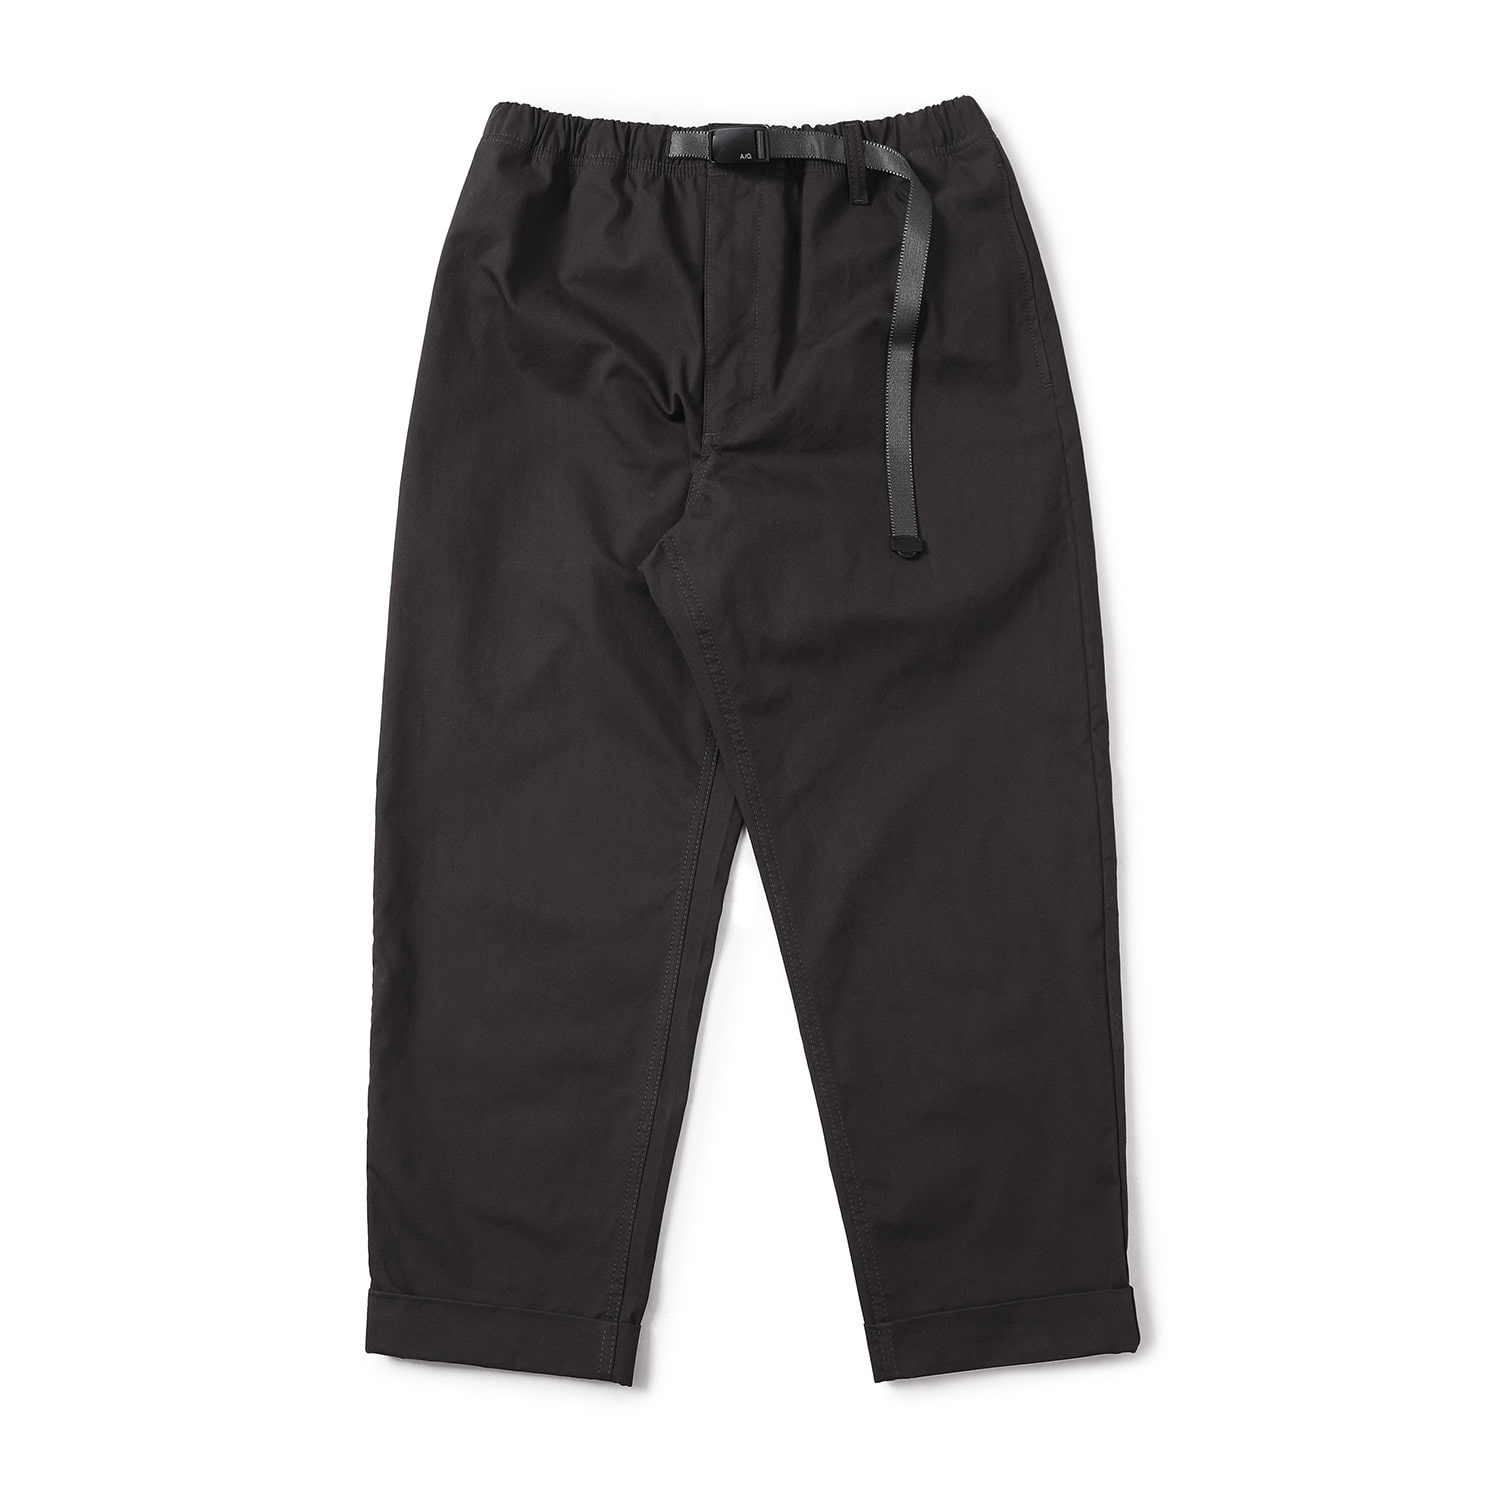 25% OFF_Stroller Dyed Pants (Almost Black)